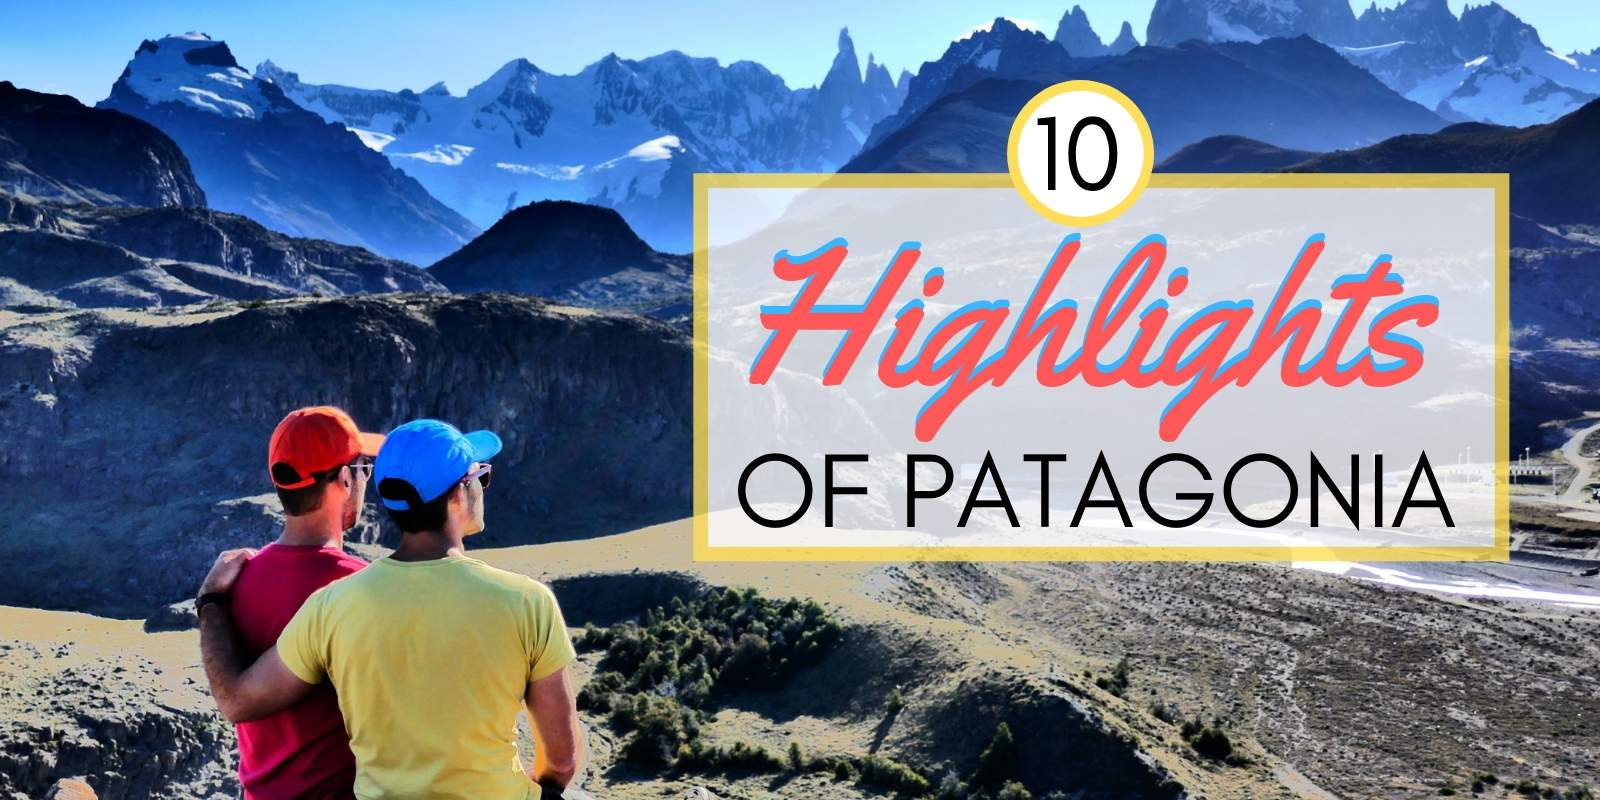 Our top 10 highlights of Patagonia